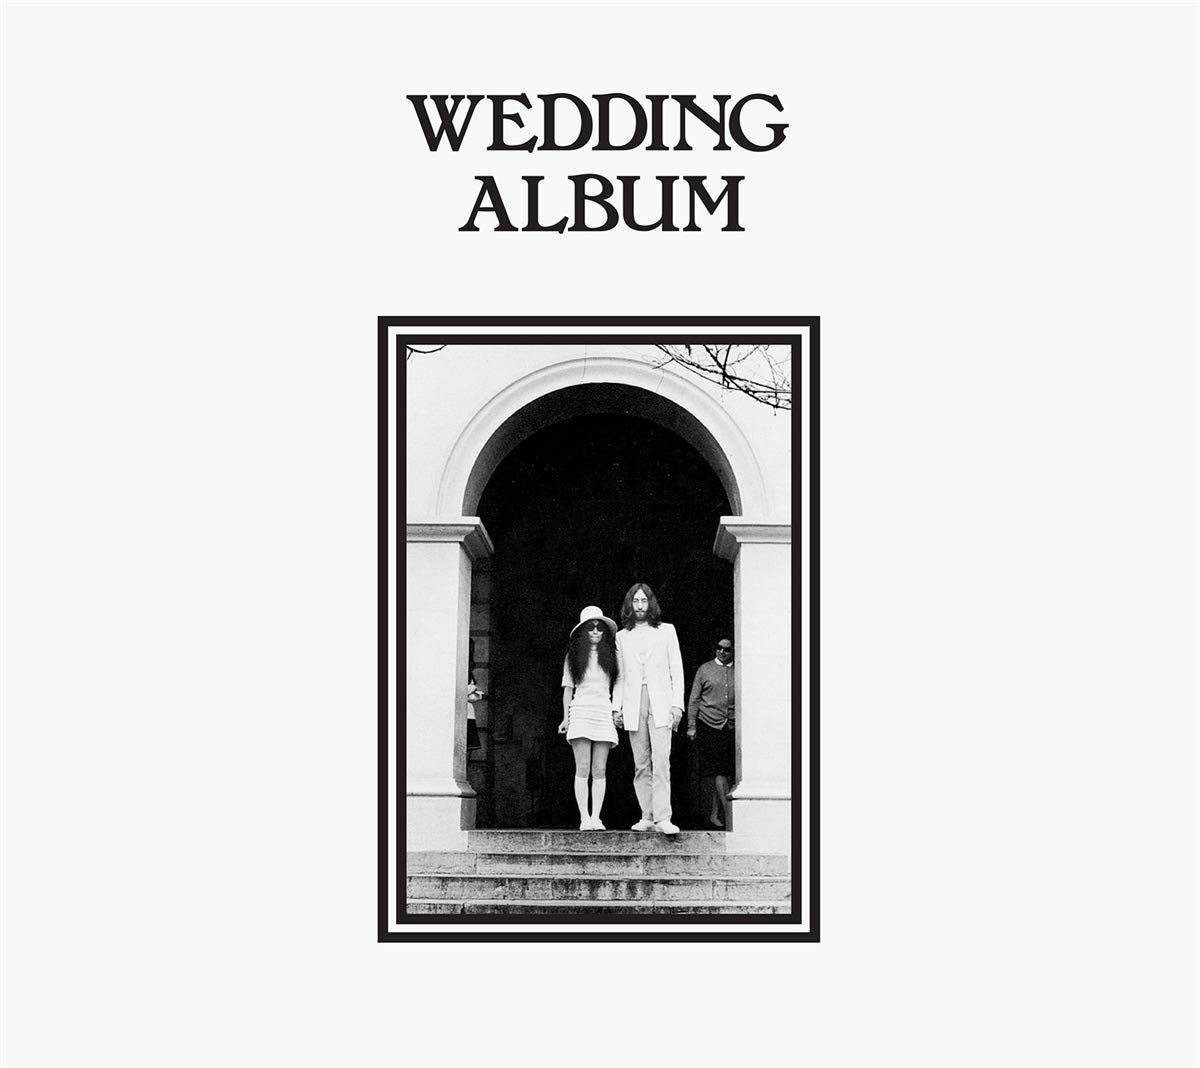 John Lennon Yoko Ono Wedding Album